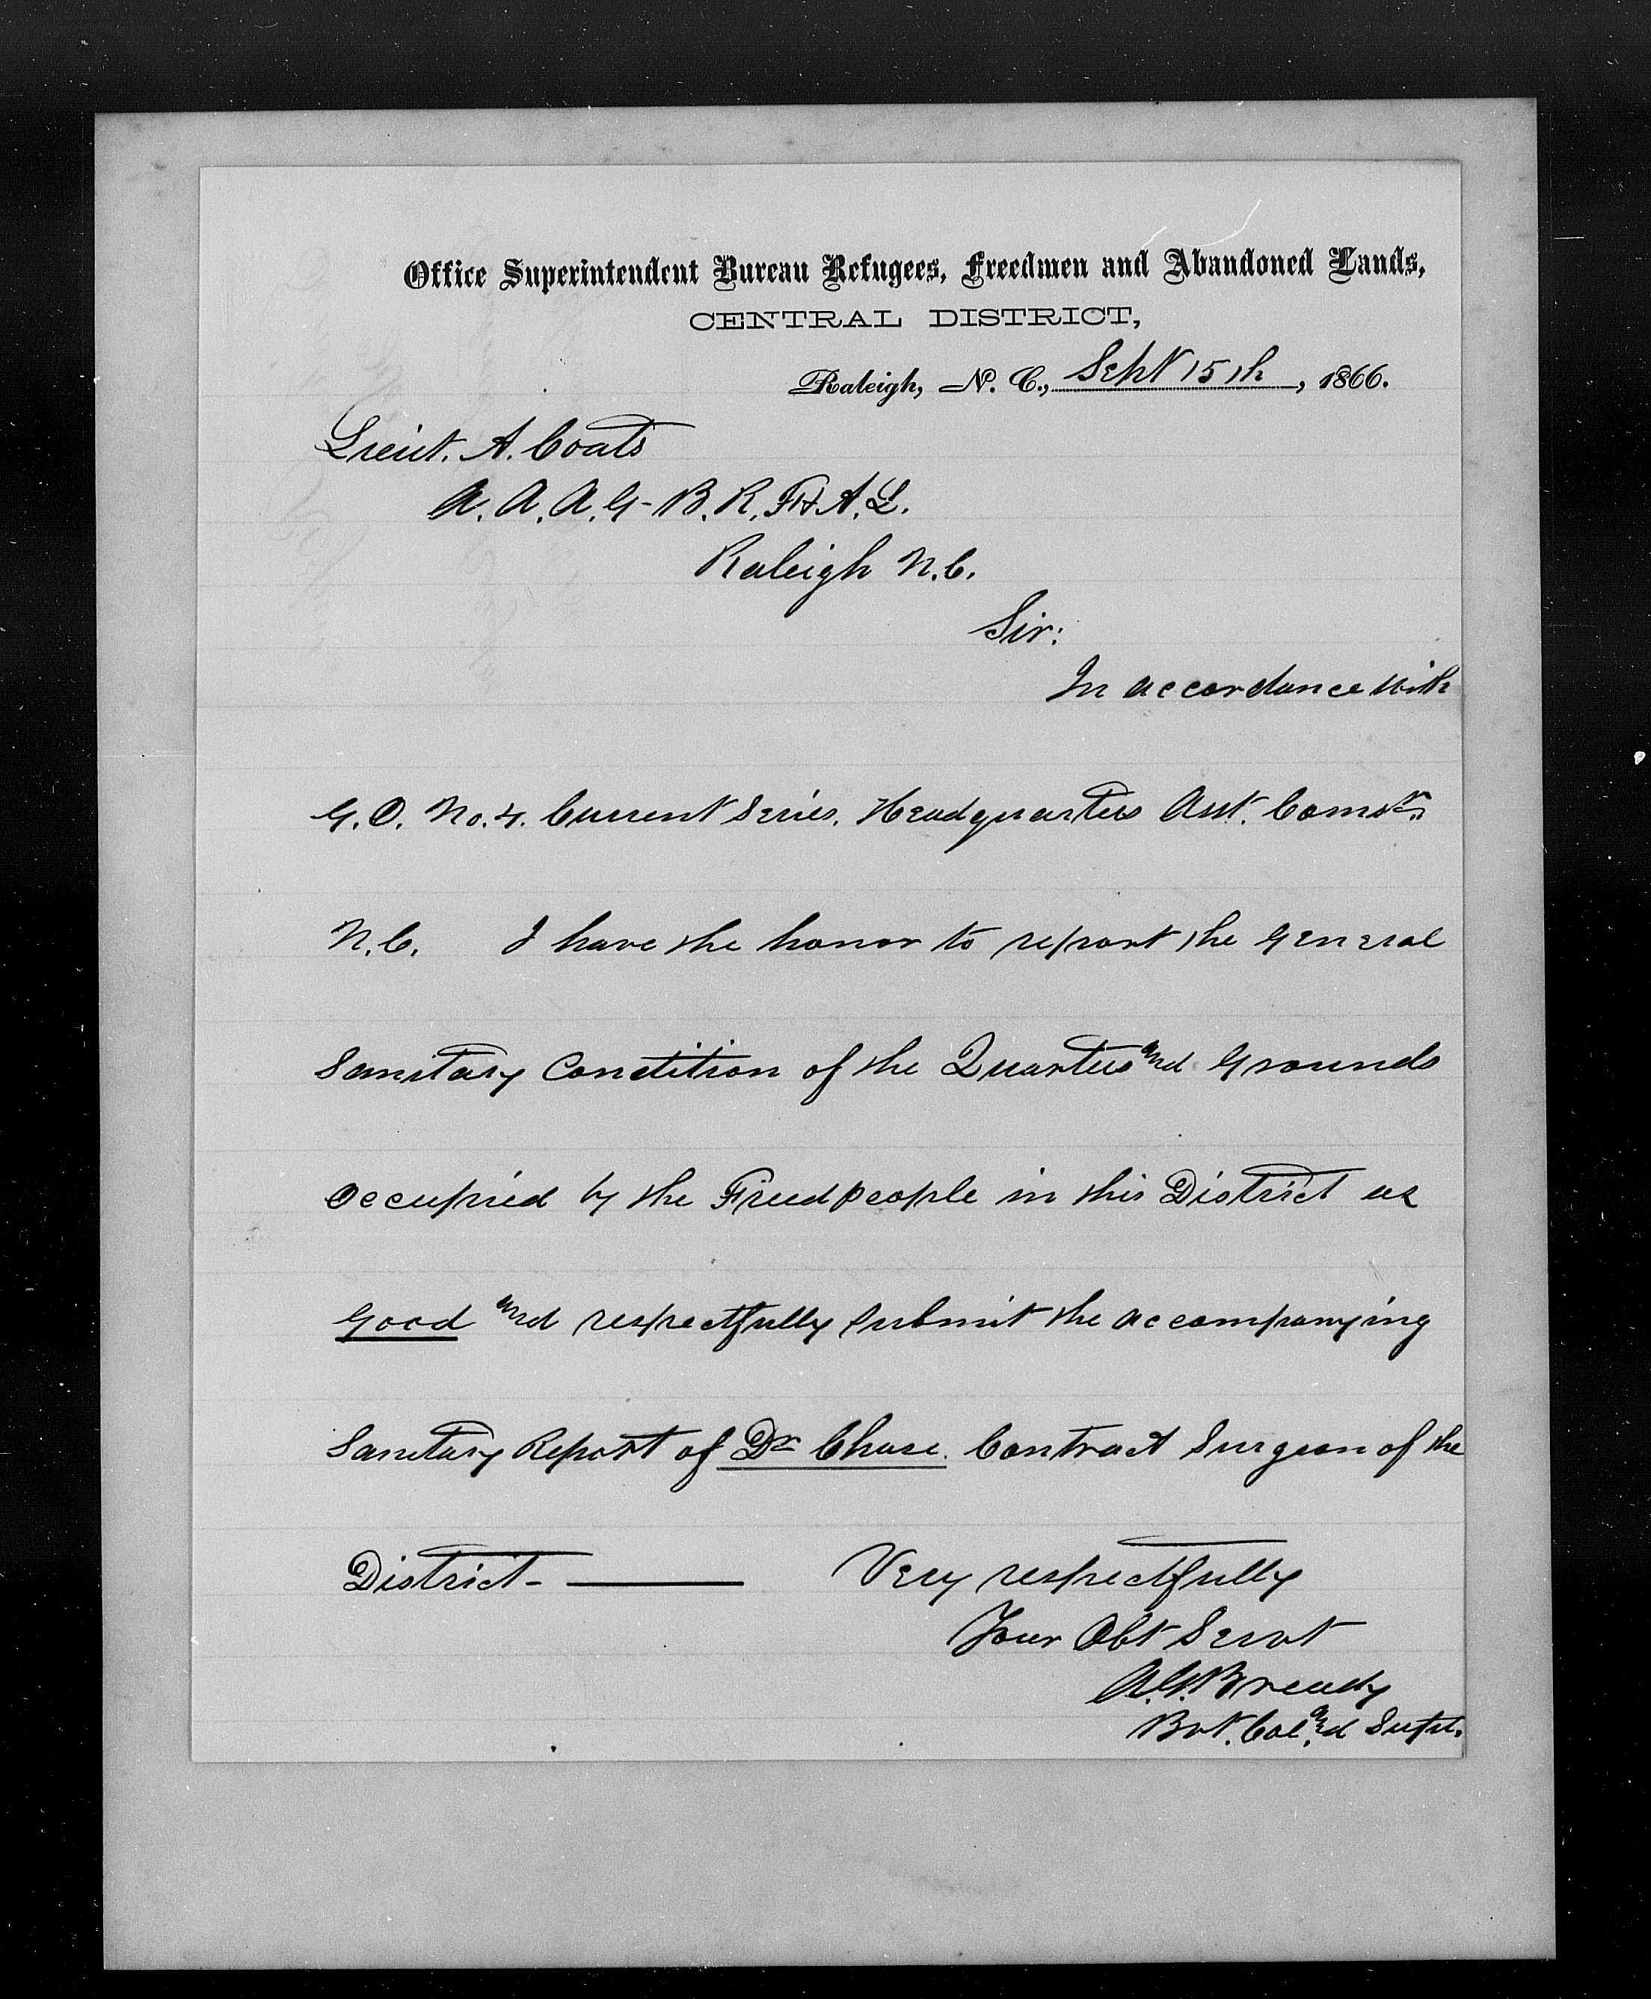 Records of the Assistant Commissioner for the State of North Carolina Bureau of Refugees, Freedmen, and Abandoned Lands